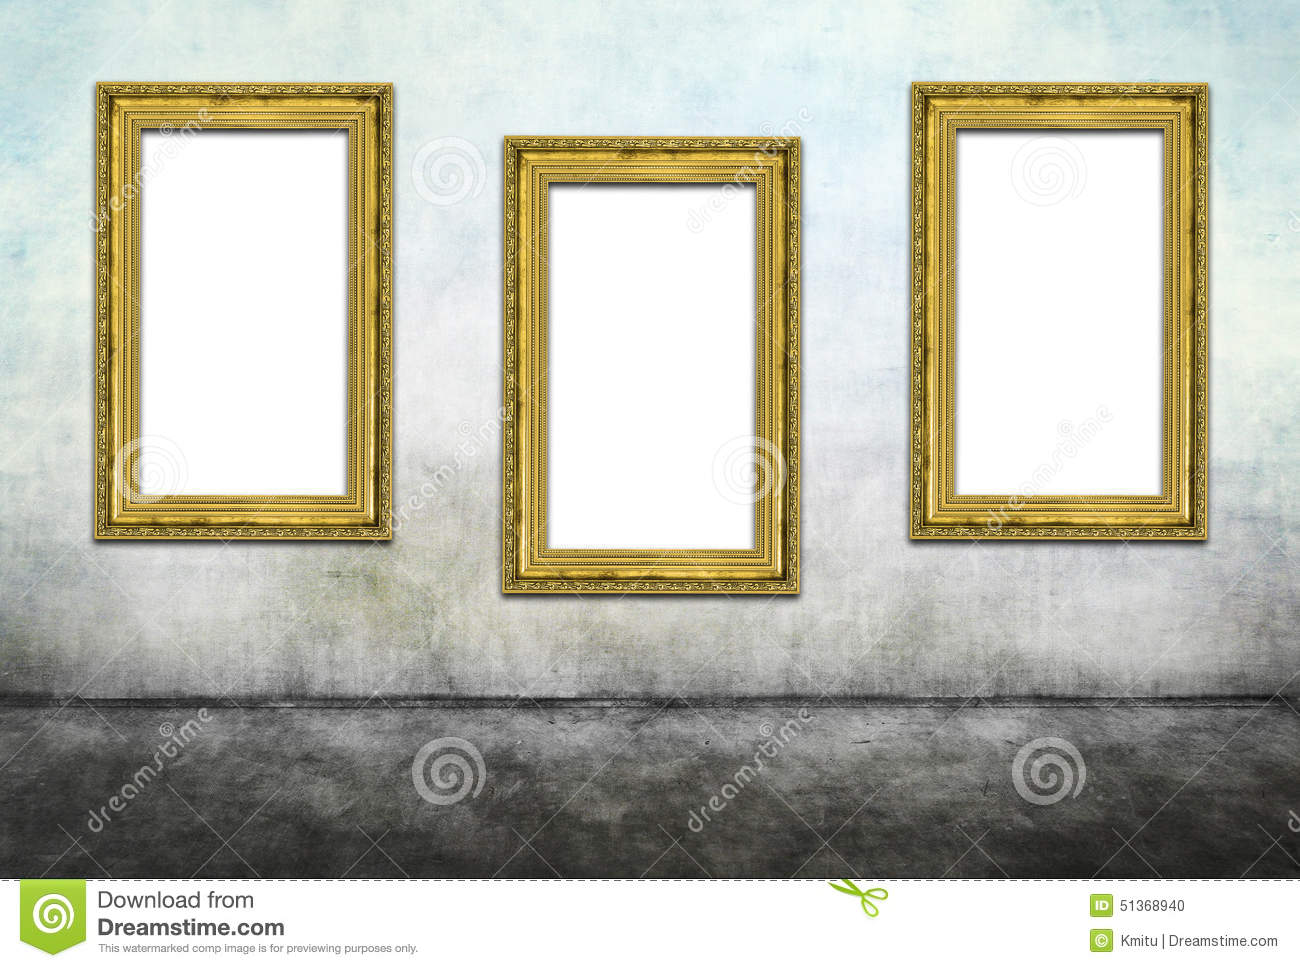 Triptych stock photo. Image of carved, hollow, frame - 51368940